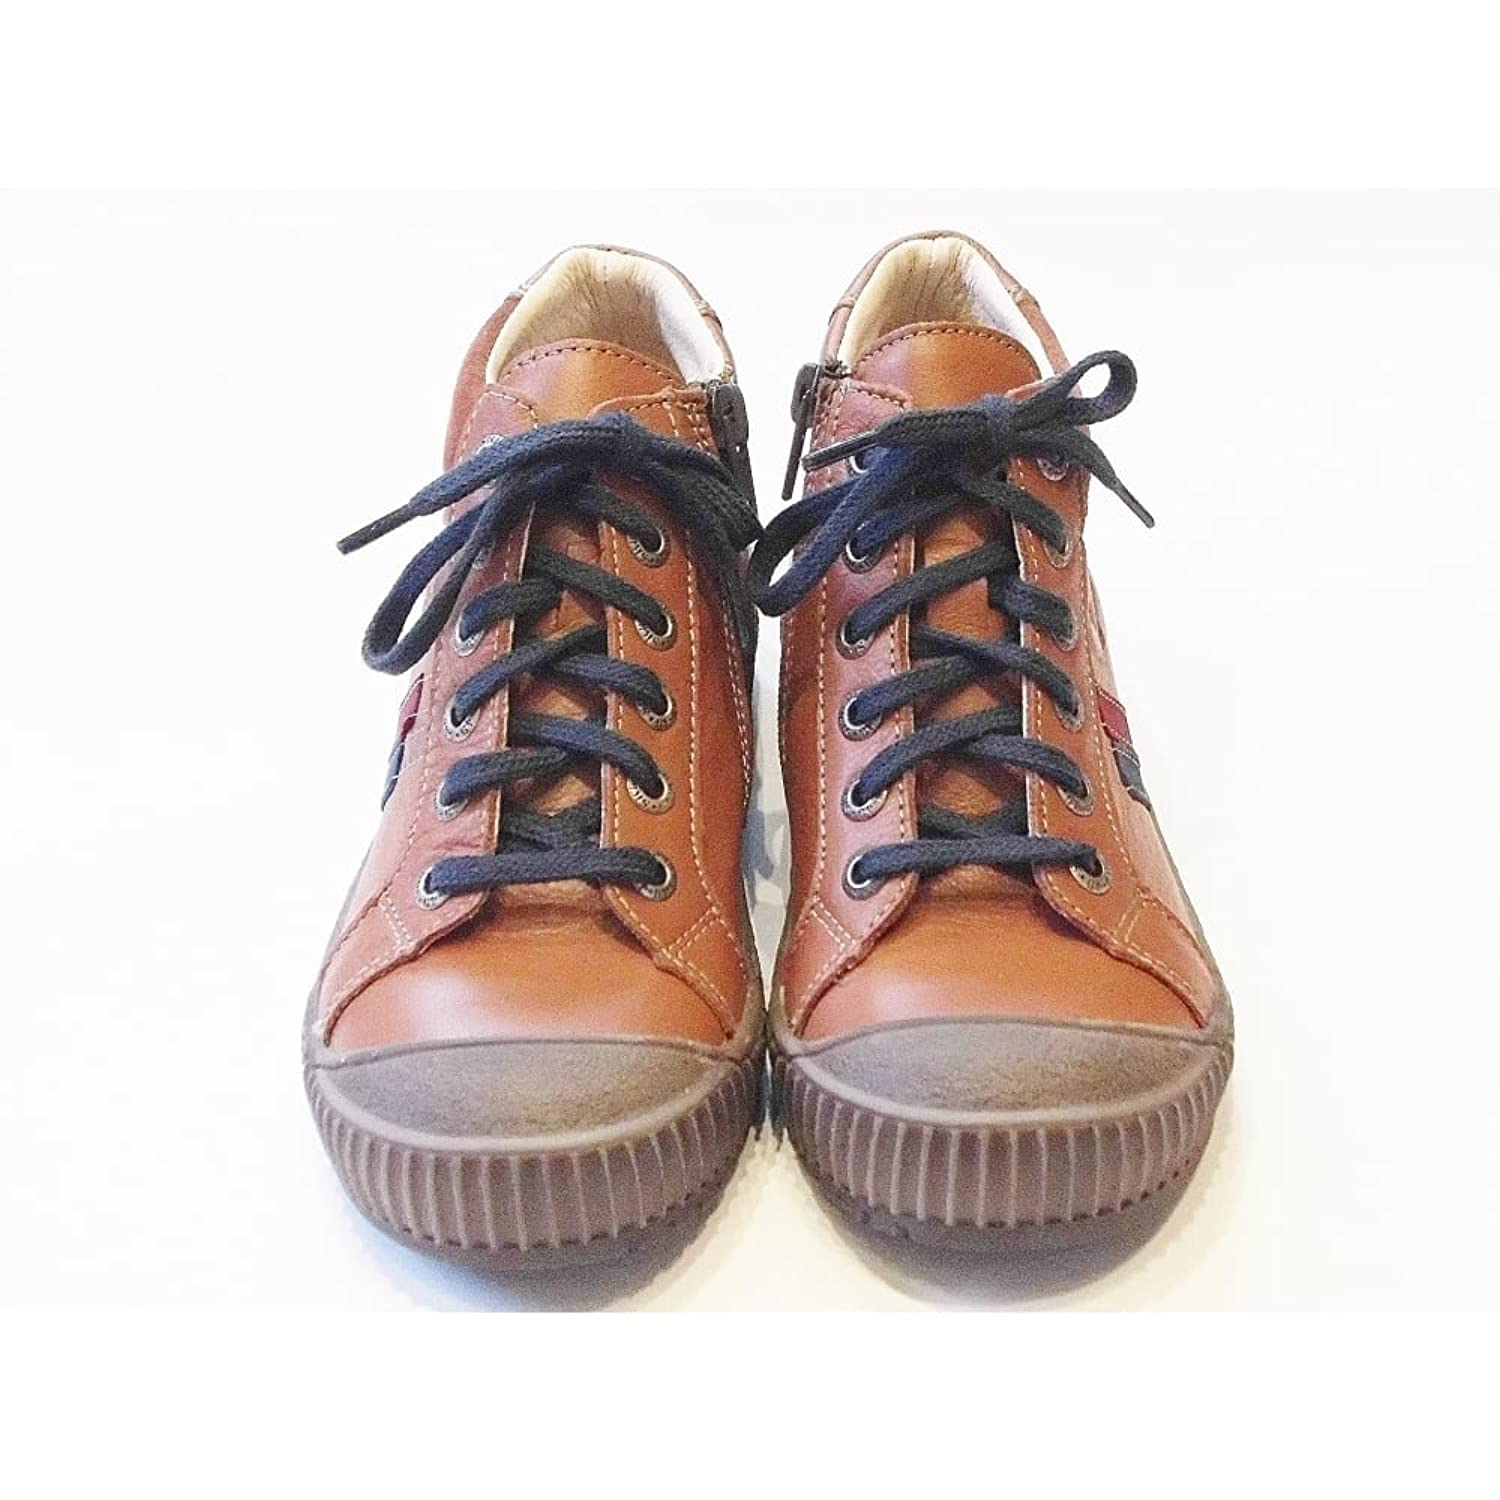 Bopy Viorn Brown Leather High Top Boots With Easy Zip Fastening & Scuff  Protection: Amazon.co.uk: Shoes & Bags